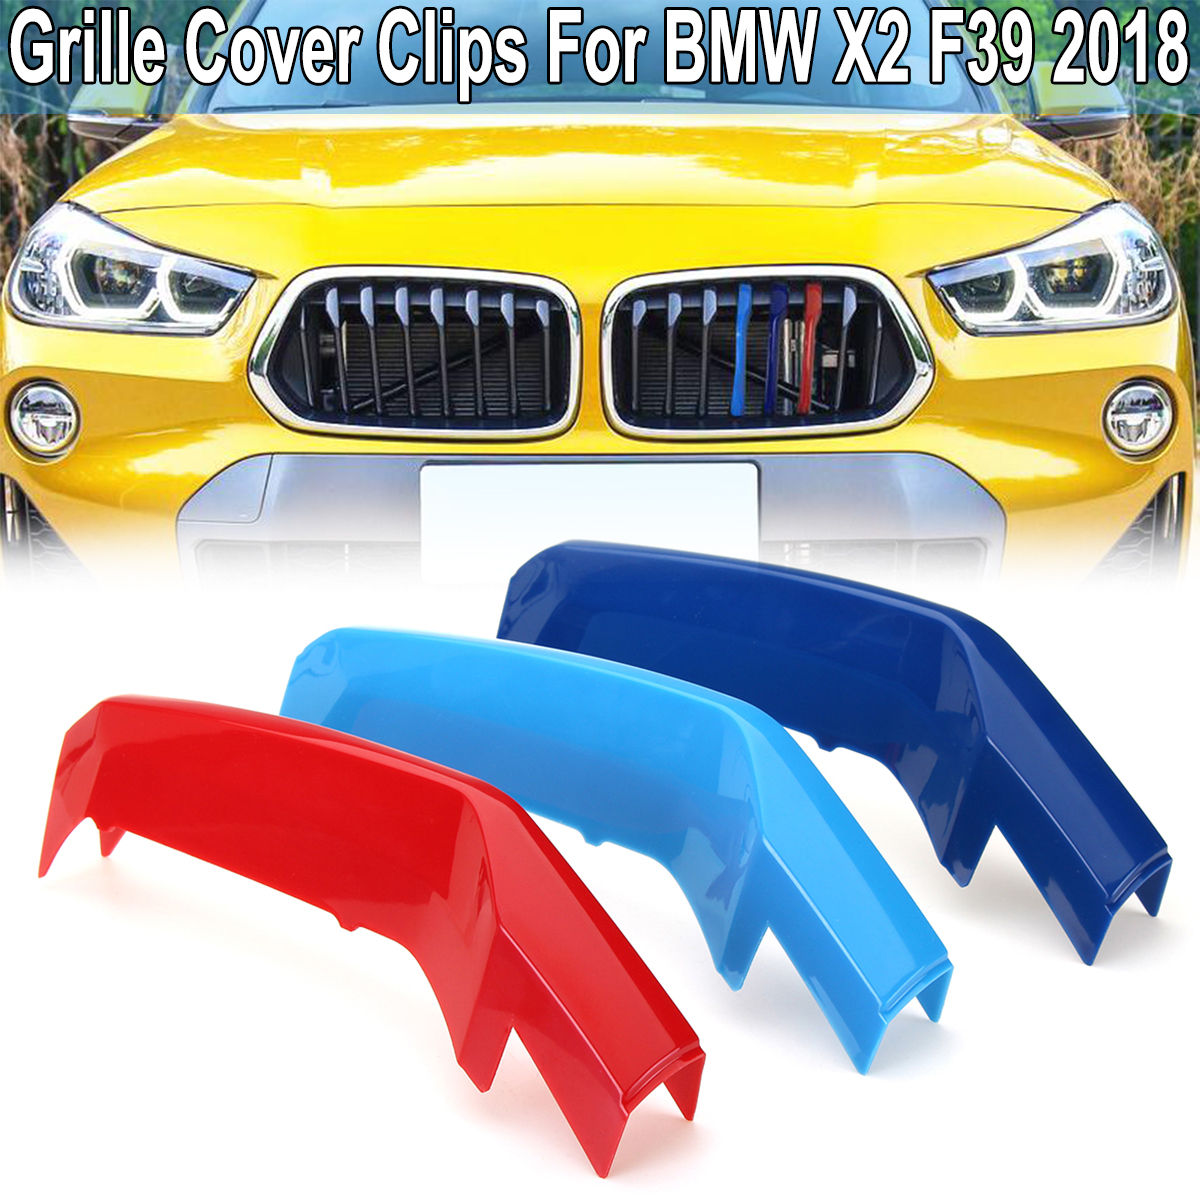 For BMW X2 F39 2018 M 3D Car Front Grille Grill Cover Trim Clips Strips Moulding Trim Strip Power Performance Accessories